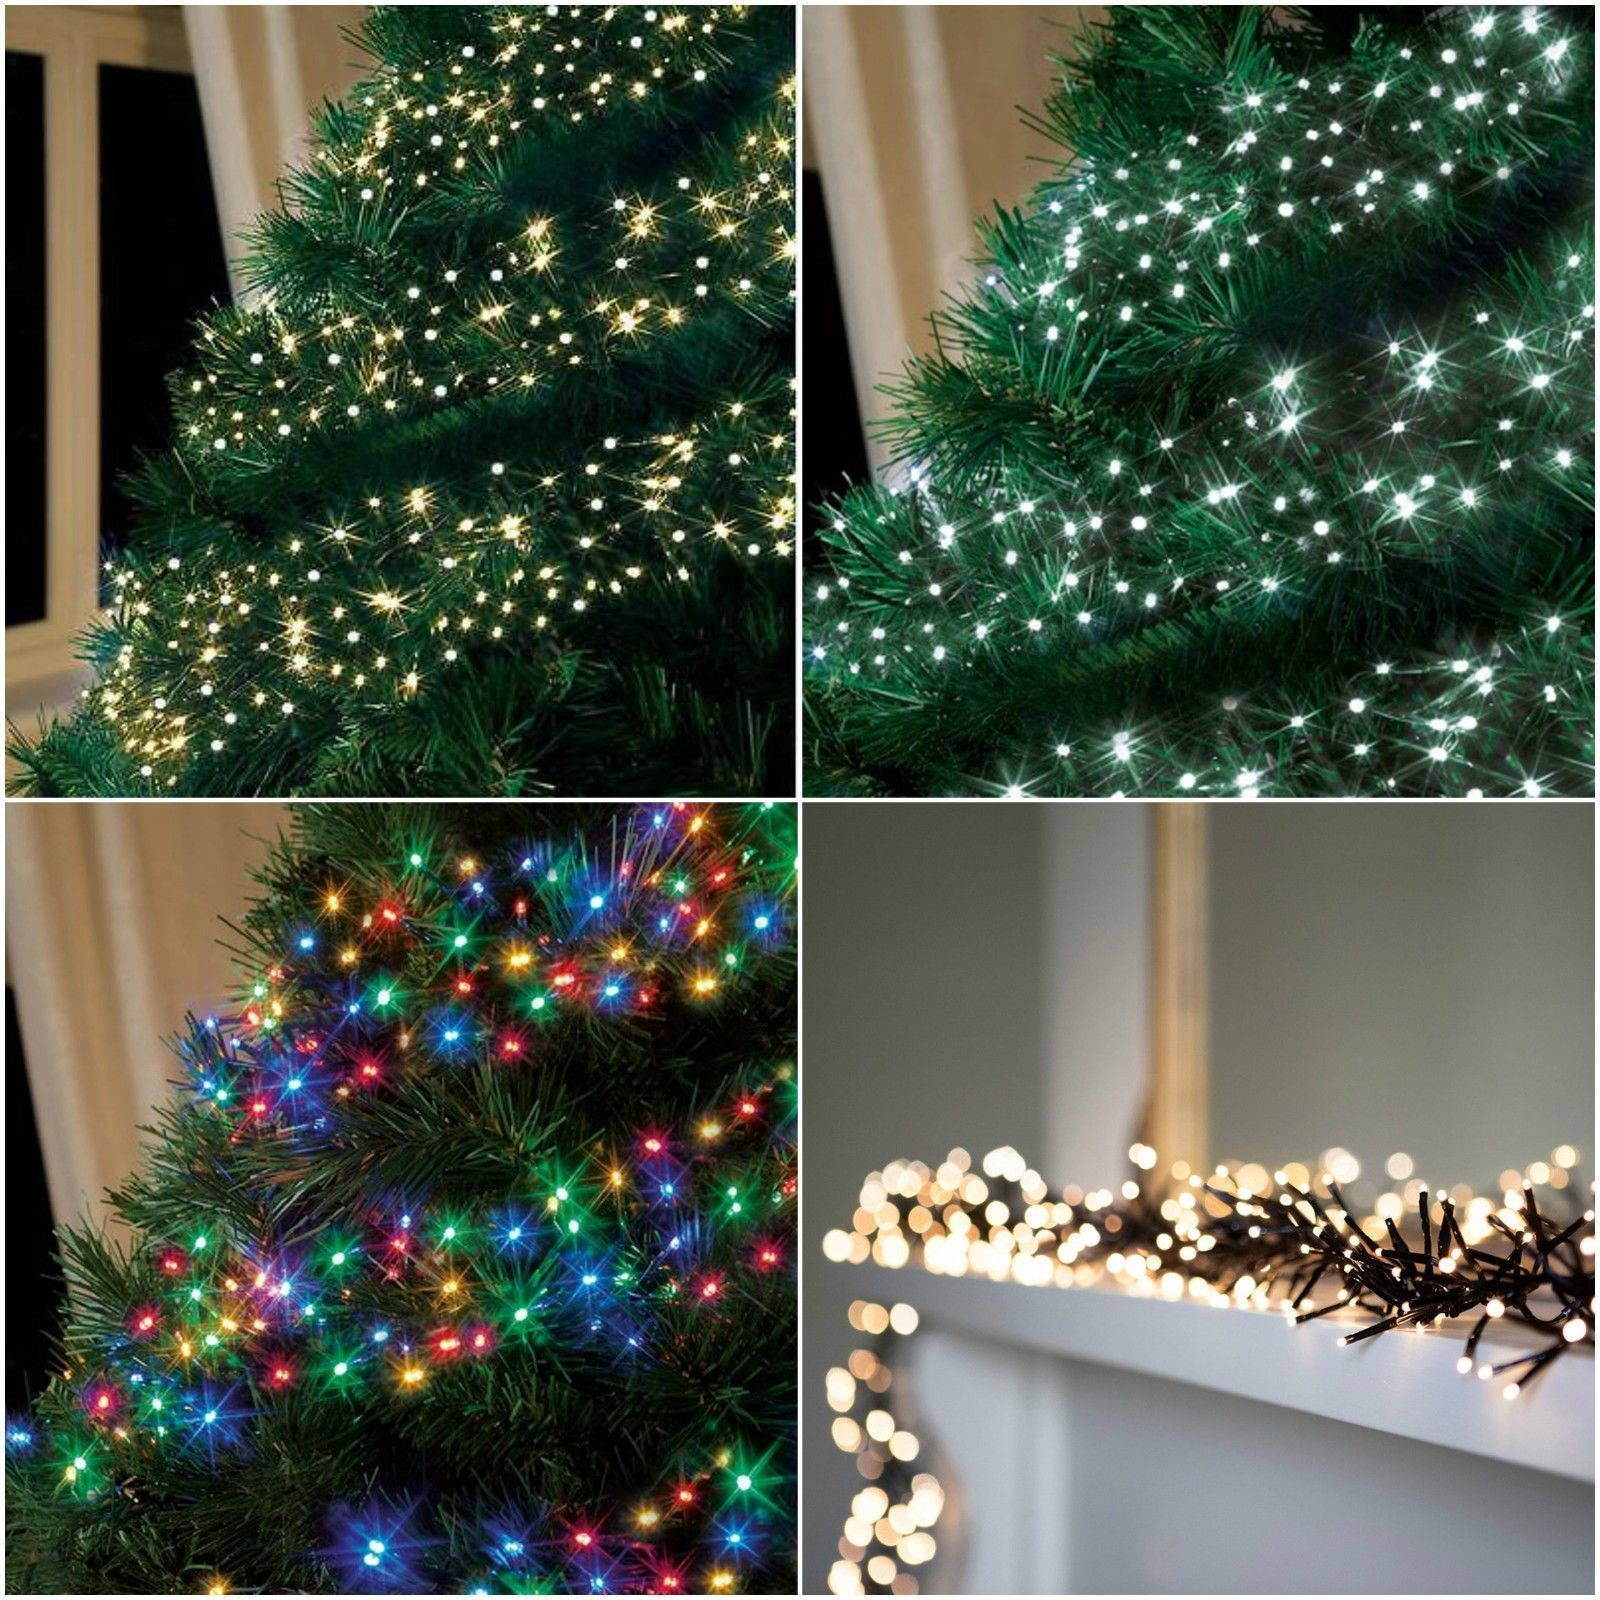 How To String Lights On A Christmas Tree Unique 280480720960 Led #christmas Cluster #string #lights Indoor Design Decoration